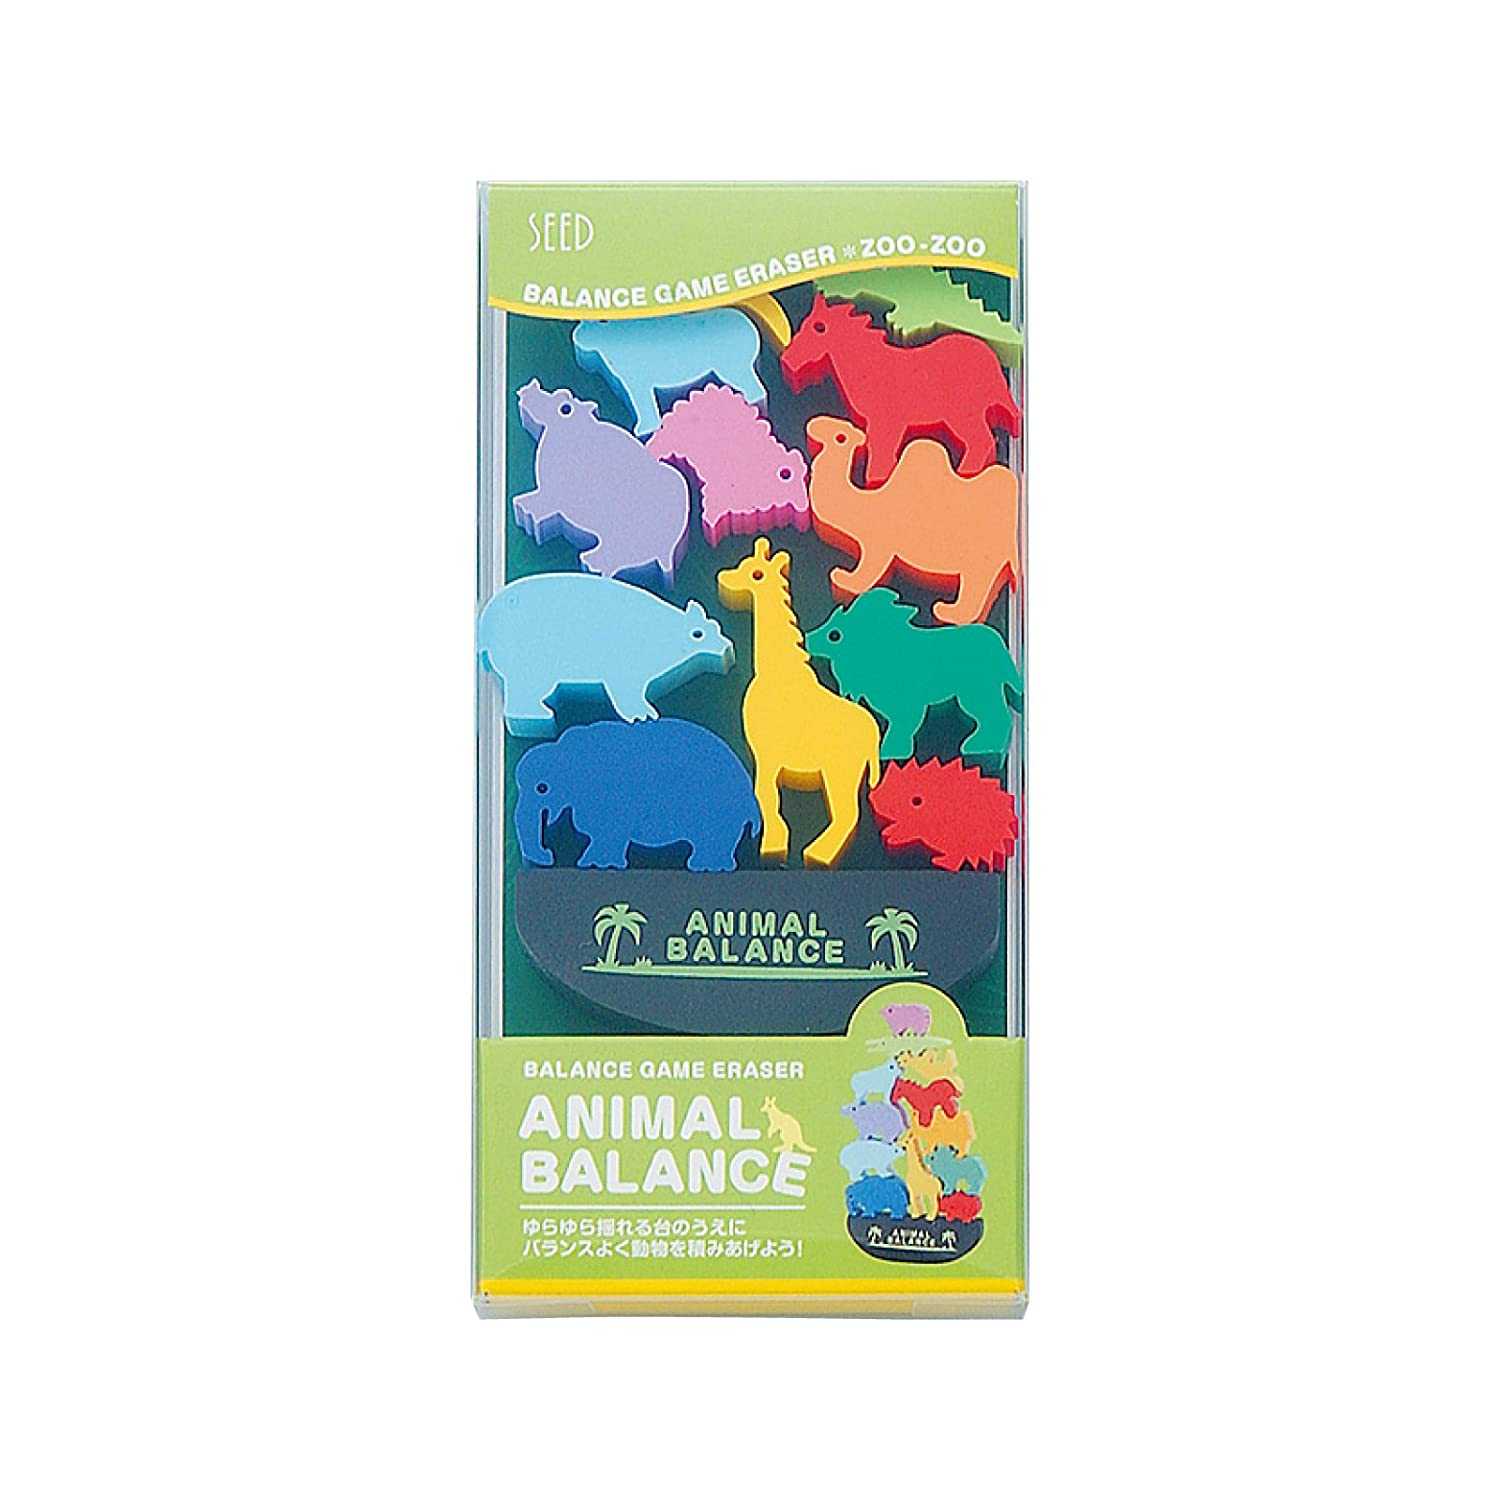 Seed Animal Balance Game Eraser Set - Zoo (japan import) YR-700D